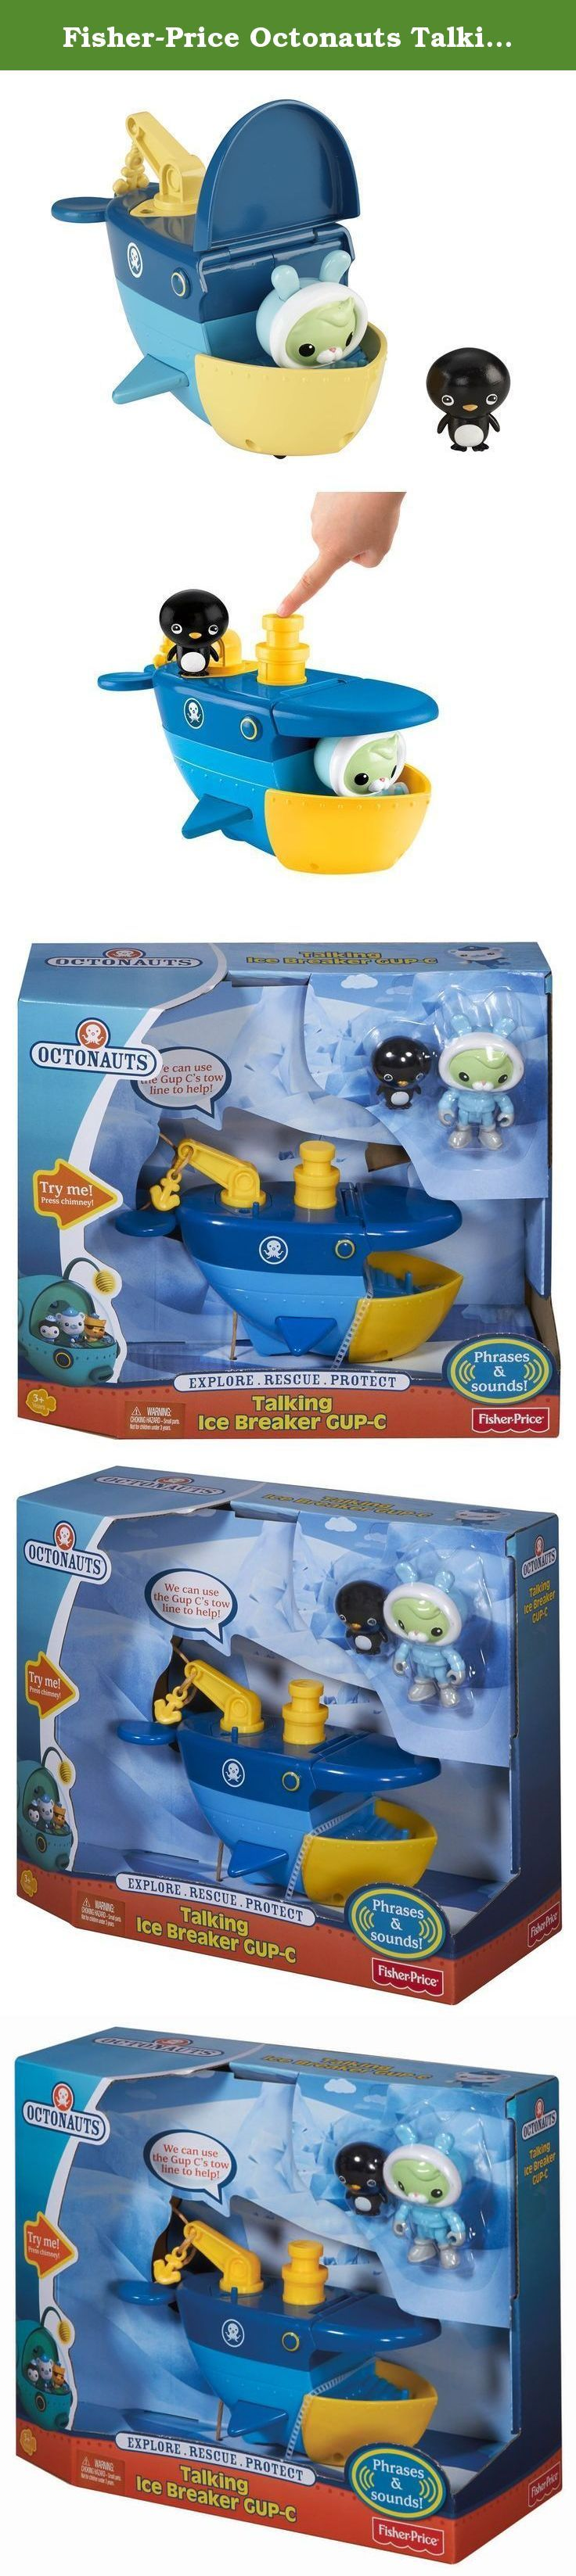 "Fisher-Price Octonauts Talking Ice Breaker Gup-C. Strong enough to transport heavy objects easily and outfitted in its ice-breaker mode, the Gap-C is the Octonauts' ideal vehicle for any arctic adventure! Press down on the Gup's chimney to activate action sounds and to hear phrases from Tweak and Barnacles! Includes Tweak in her snowsuit and an Adeline penguin to rescue! Requires 3 ""AG13"" (LR44) Button Cell batteries. Not intended for water play."